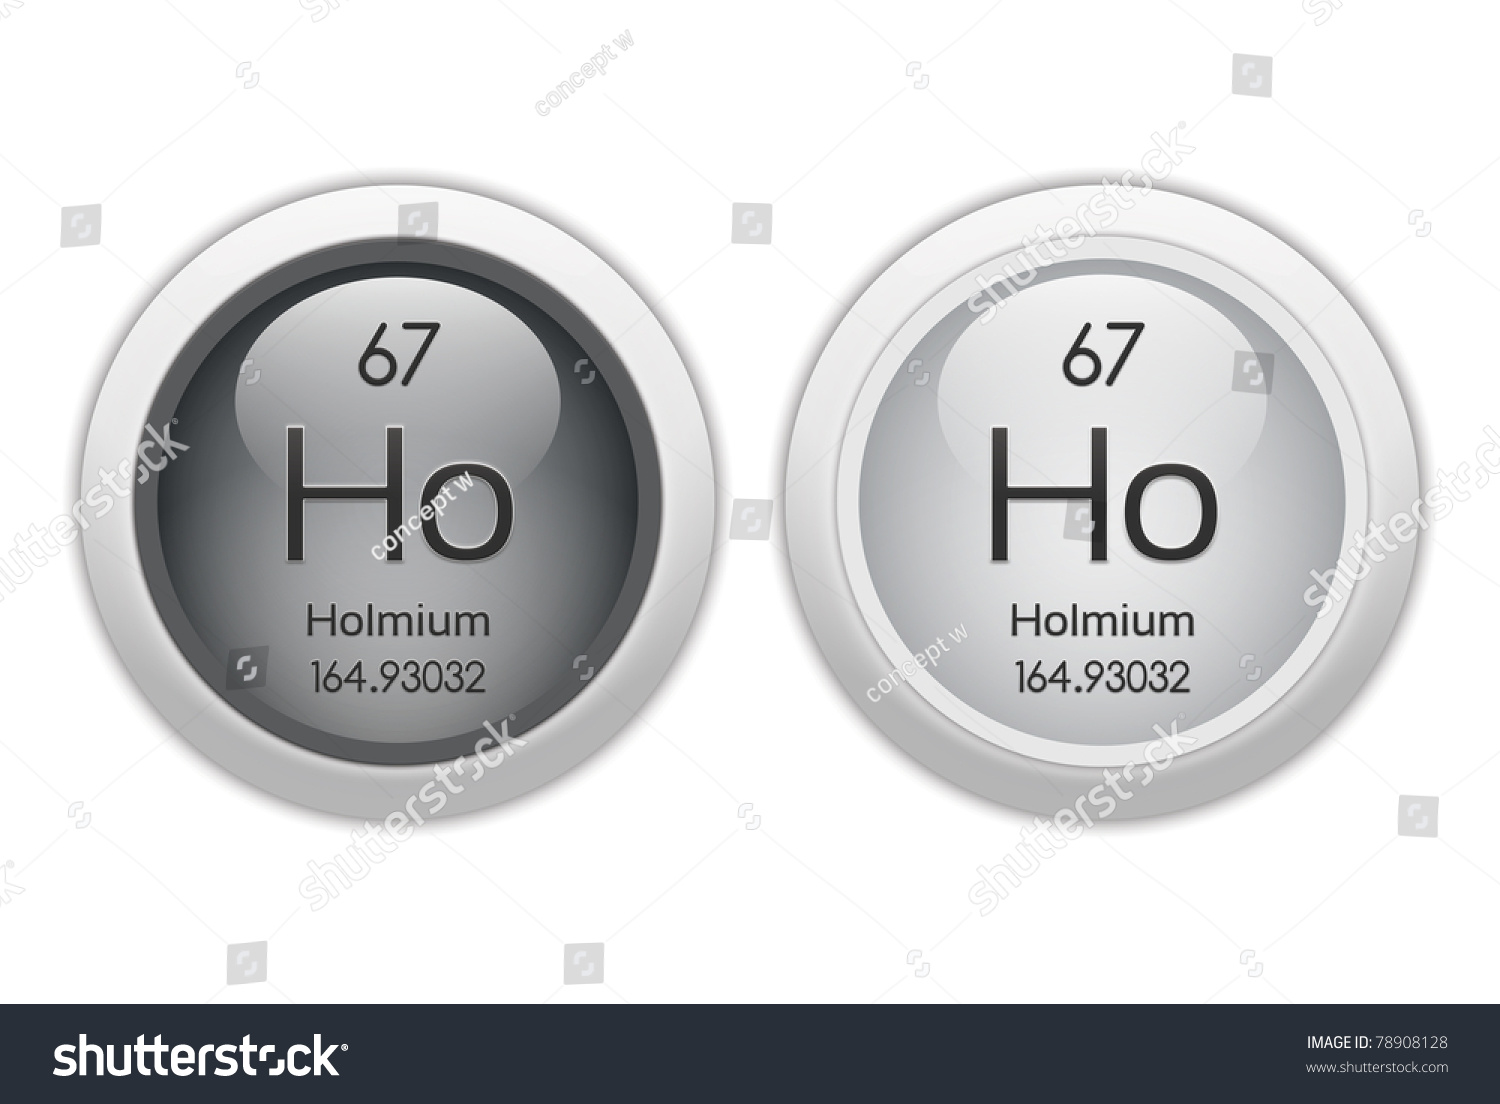 Holmium Two Web Buttons Chemical Element Stock Illustration 78908128